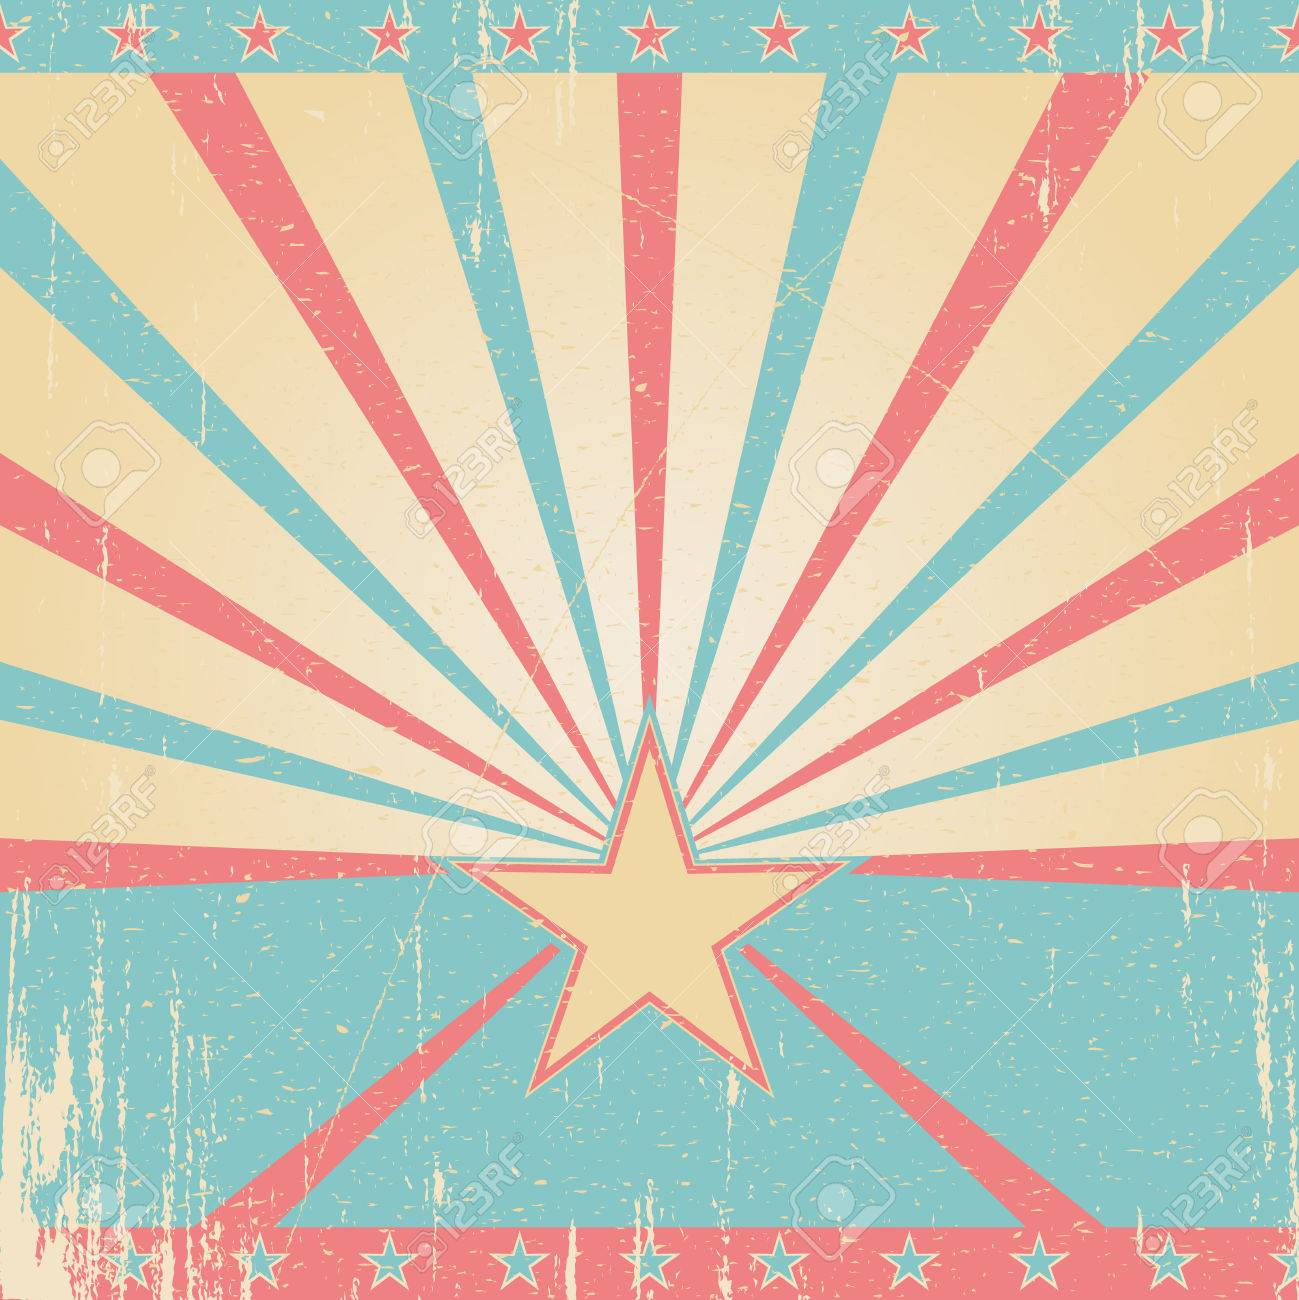 Textured pink blue retro background  Vintage poster with star